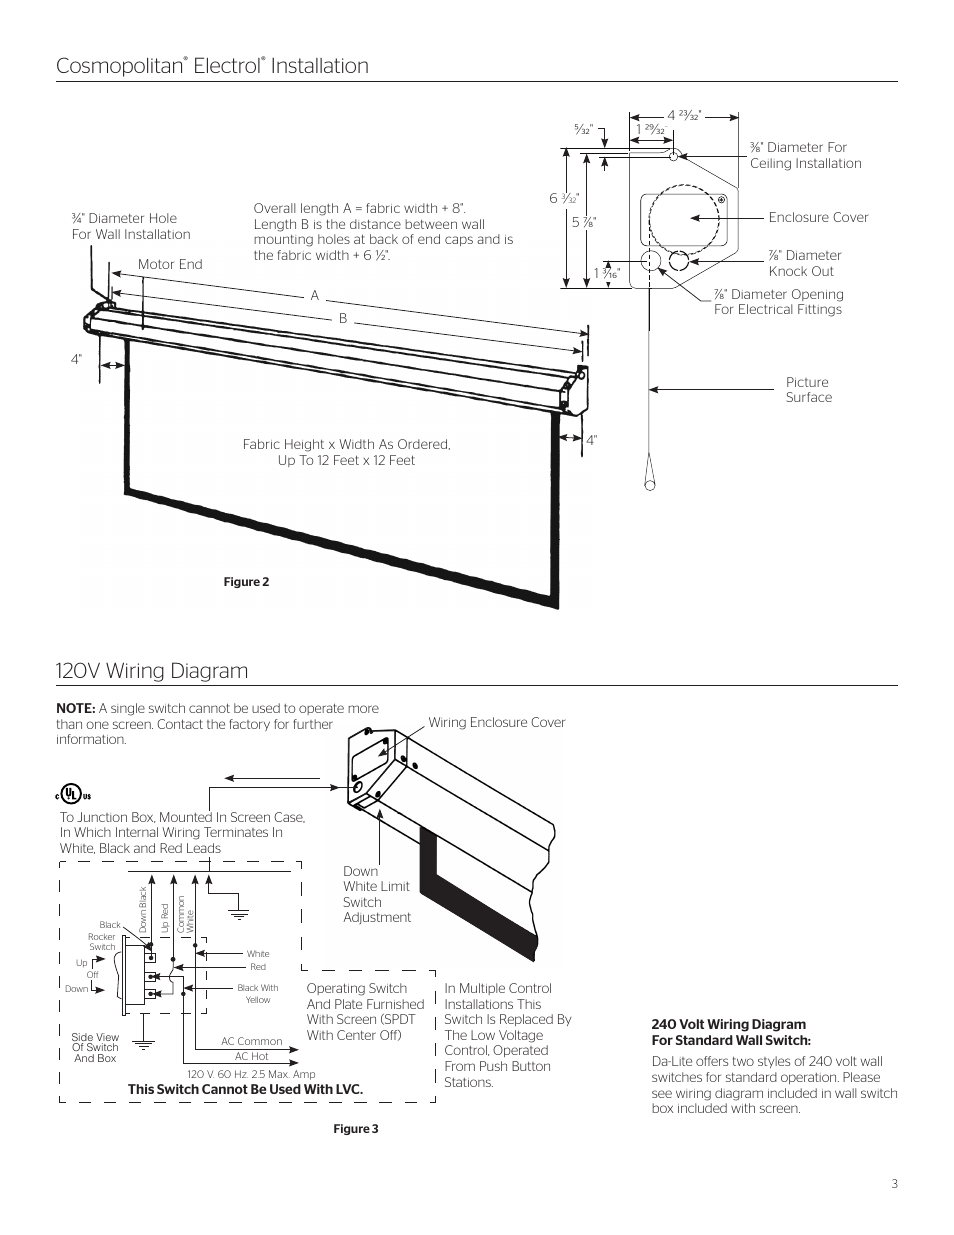 Cosmopolitan Electrol Installation 120v Wiring Diagram Da Lite 240 Volt Wire User Manual Page 3 8